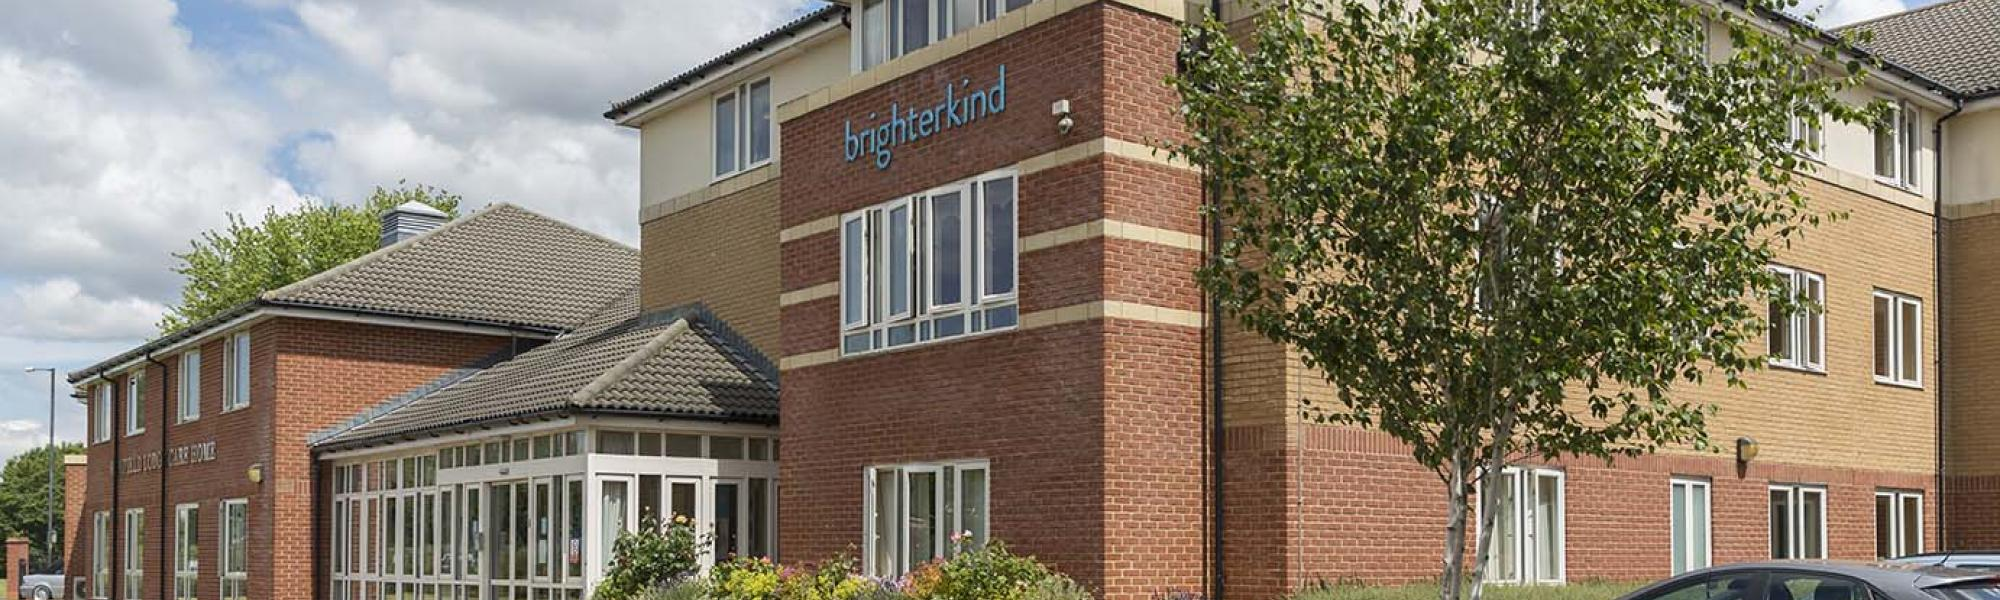 Whitchurch Care Home Bristol